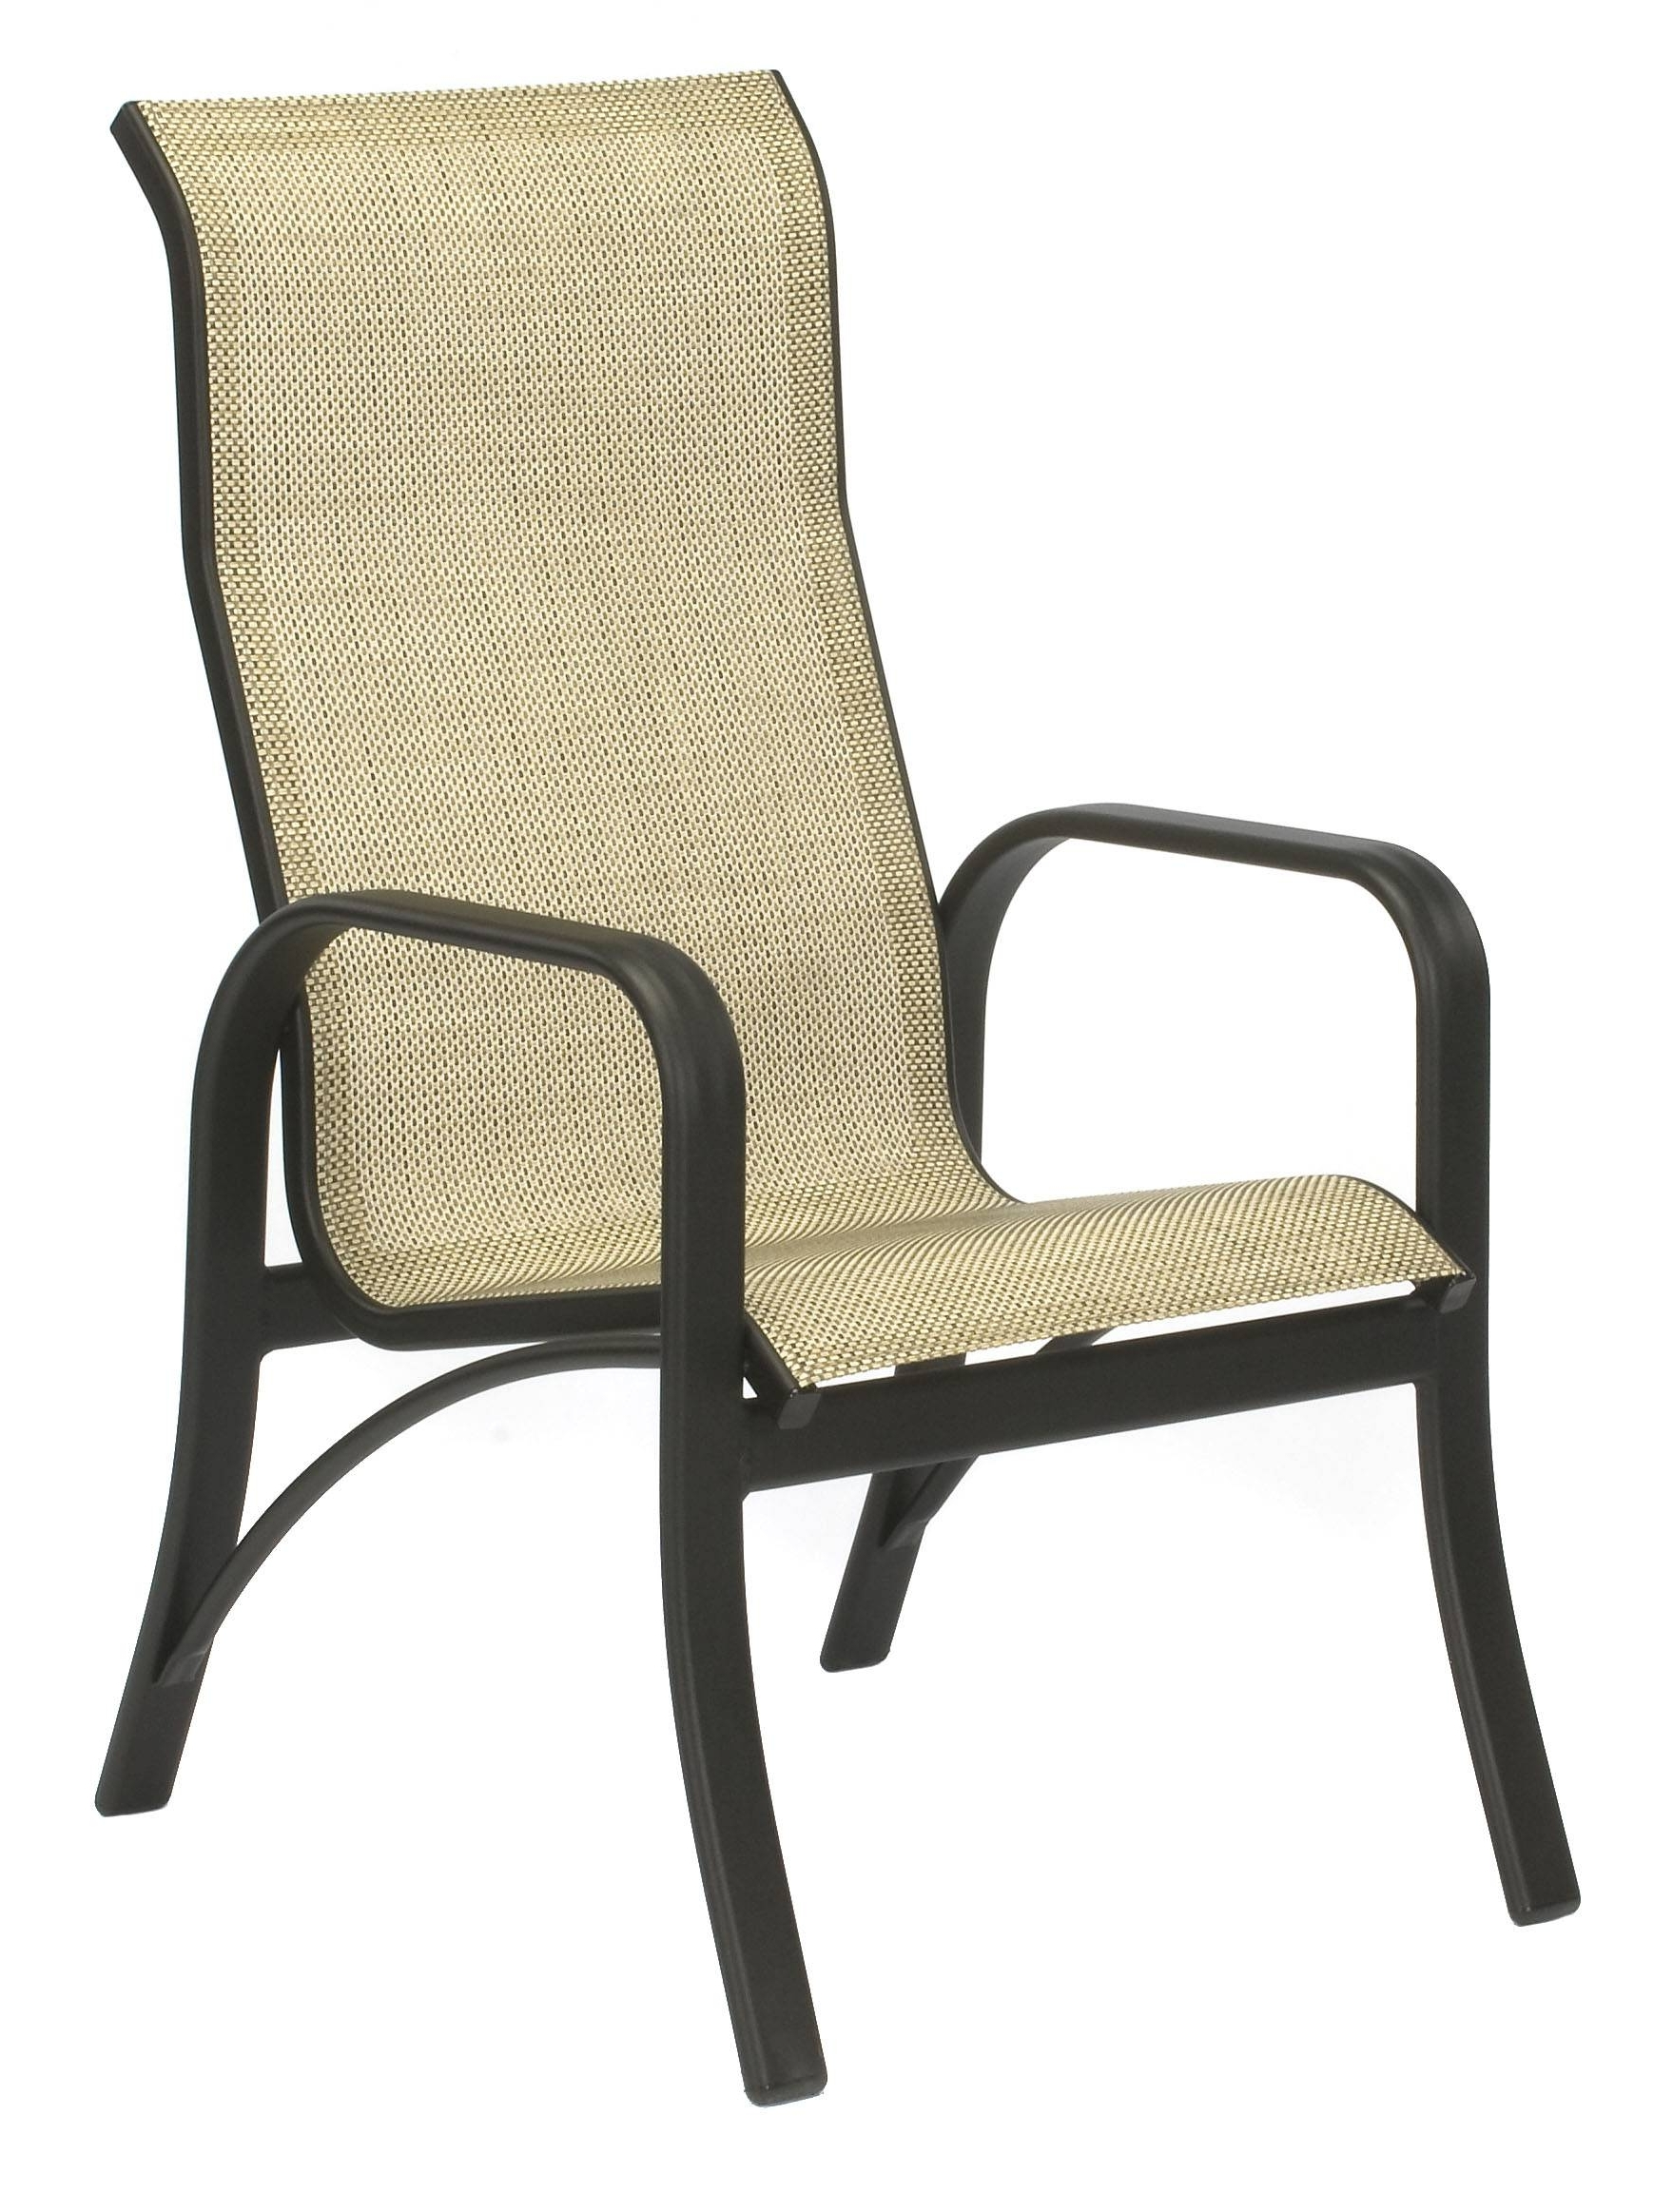 Most Current Sling Black Outdoor Chairs Bamboo Set Of Walmart Marvellous Swivel Within Patio Sling Rocking Chairs (View 6 of 15)